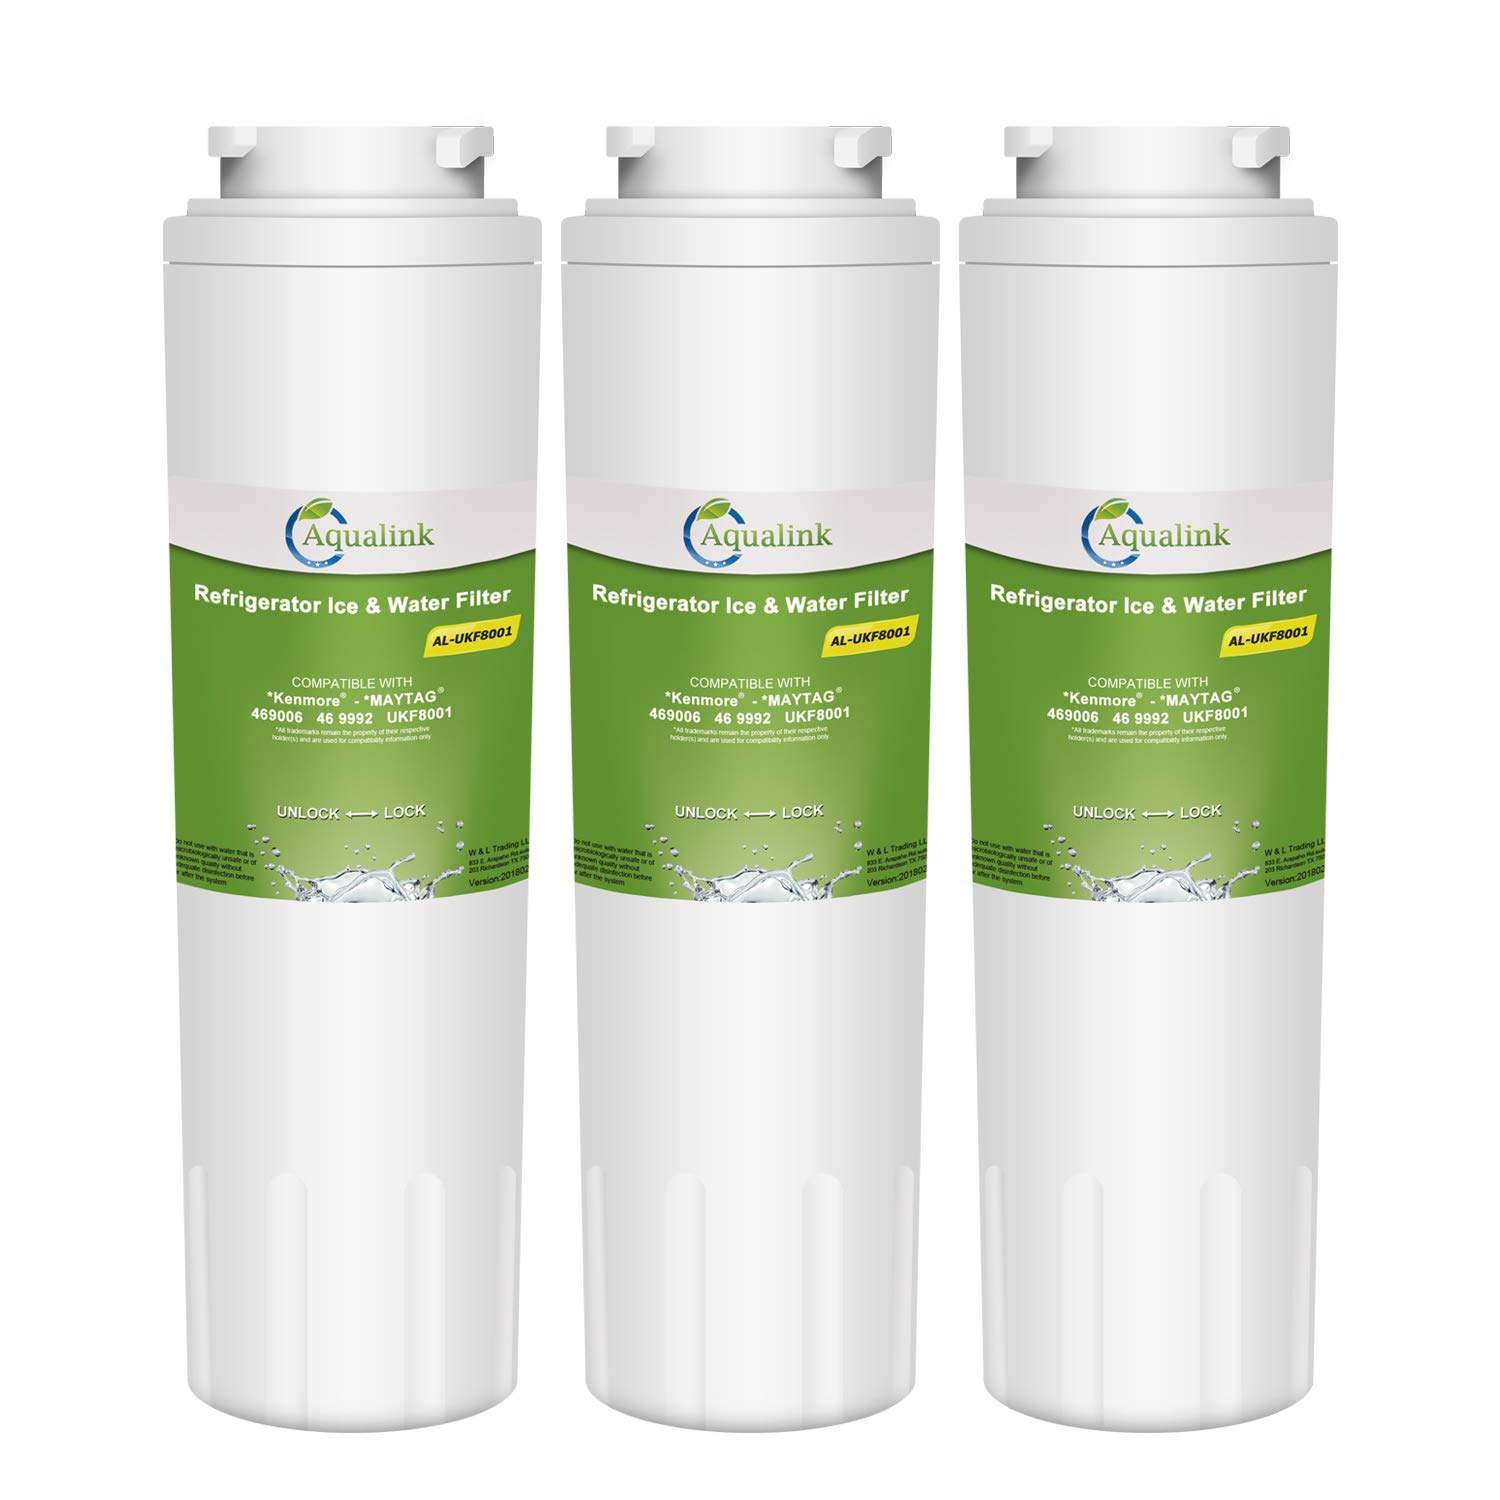 AQUALINK UKF8001 Replacement Refrigerator Water Filter, Compatible with Maytag UKF8001, UKF8001AXX, UKF8001P, Whirlpool 4396395, 469006, EDR4RXD1, EveryDrop Filter 4, Puriclean II 3 PACK